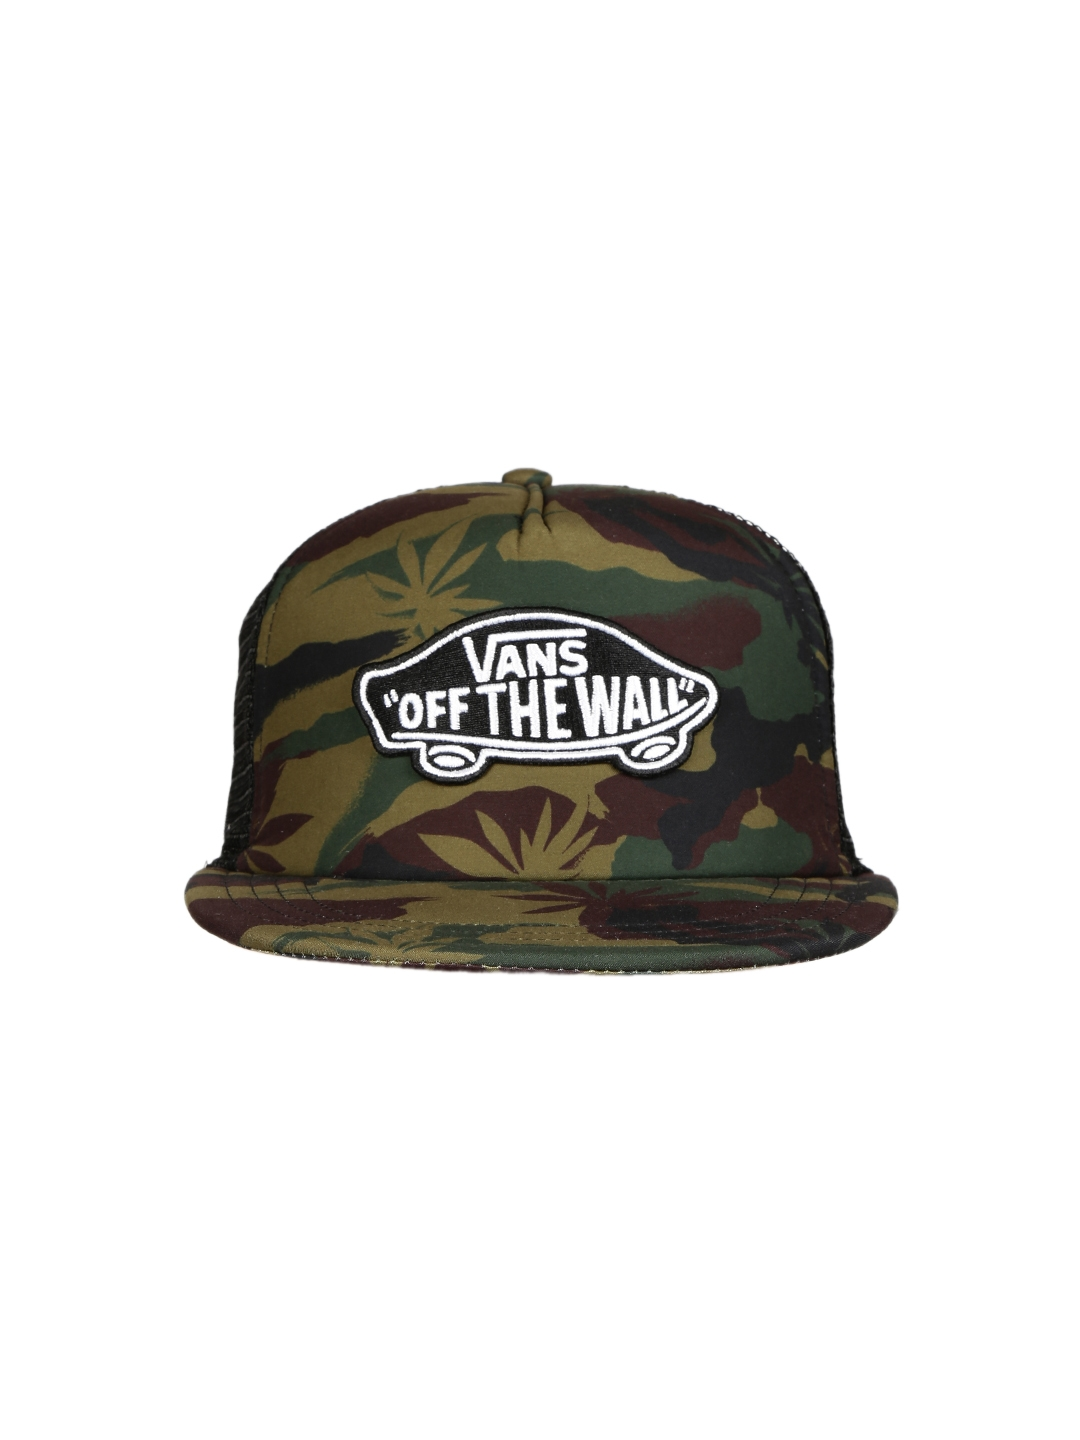 03a015405c5 Buy Vans Men Black   Green Camouflage Print Classic Patch Trucker Cap - Caps  for Men 1869705